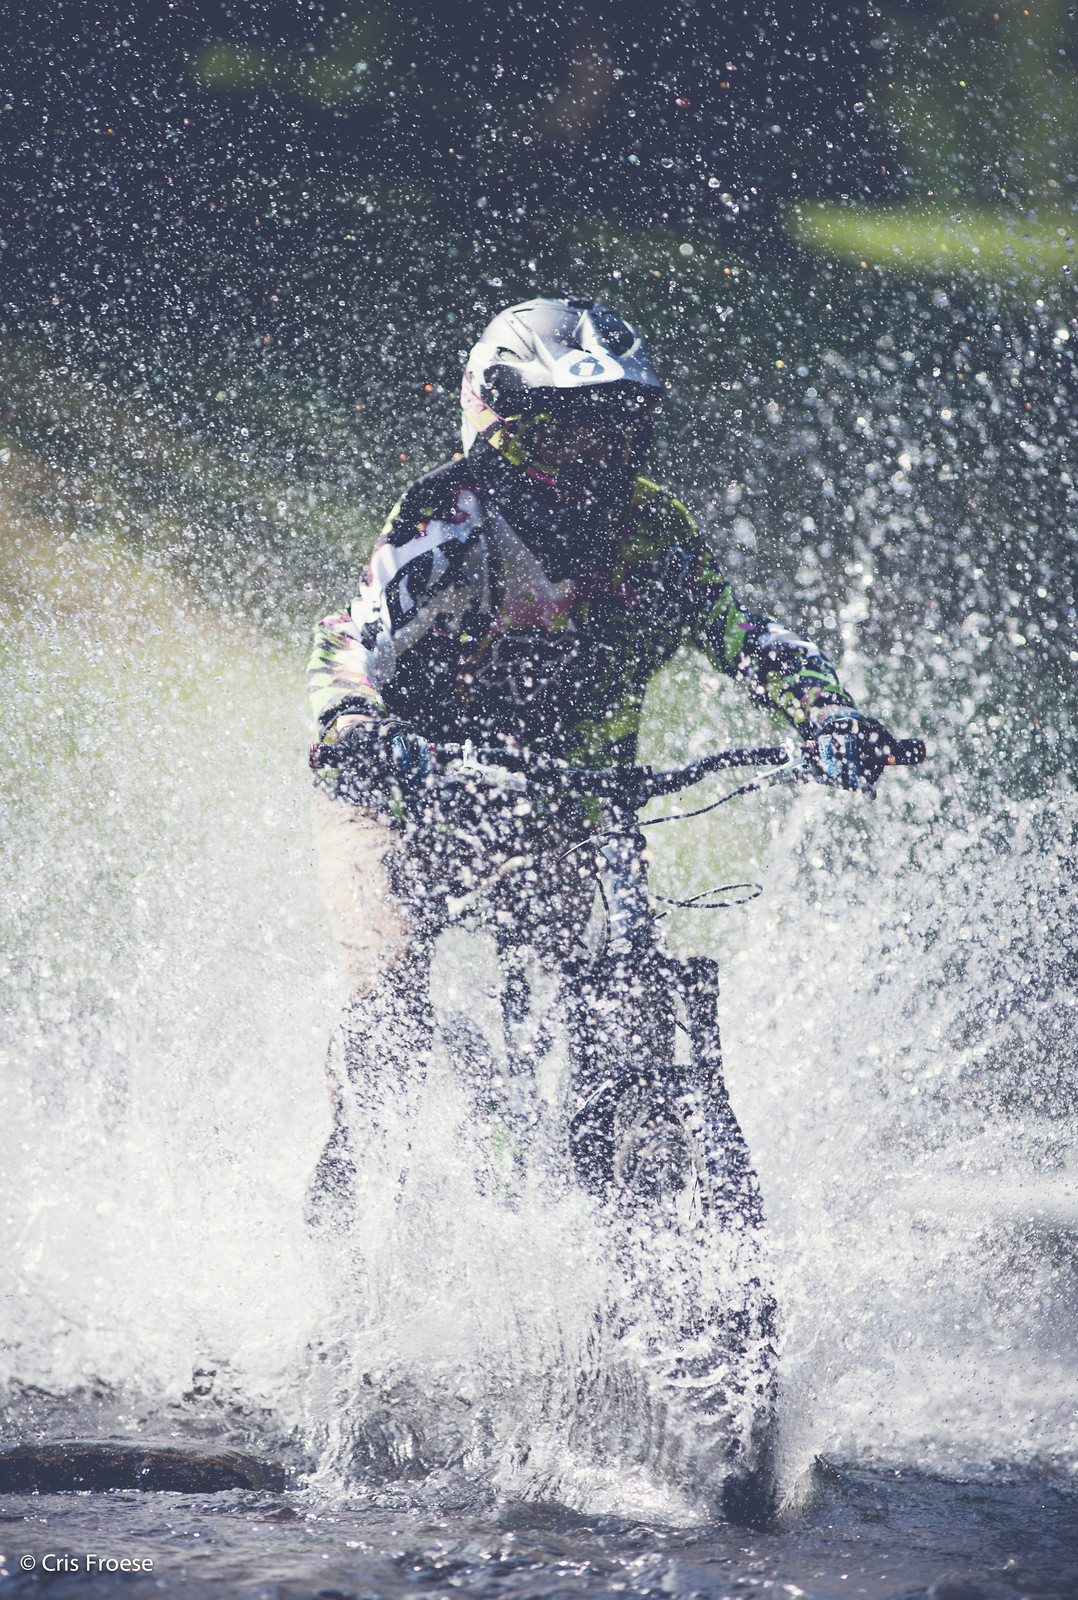 qra splash-6 - MouflonsRiders - Mountain Biking Pictures - Vital MTB